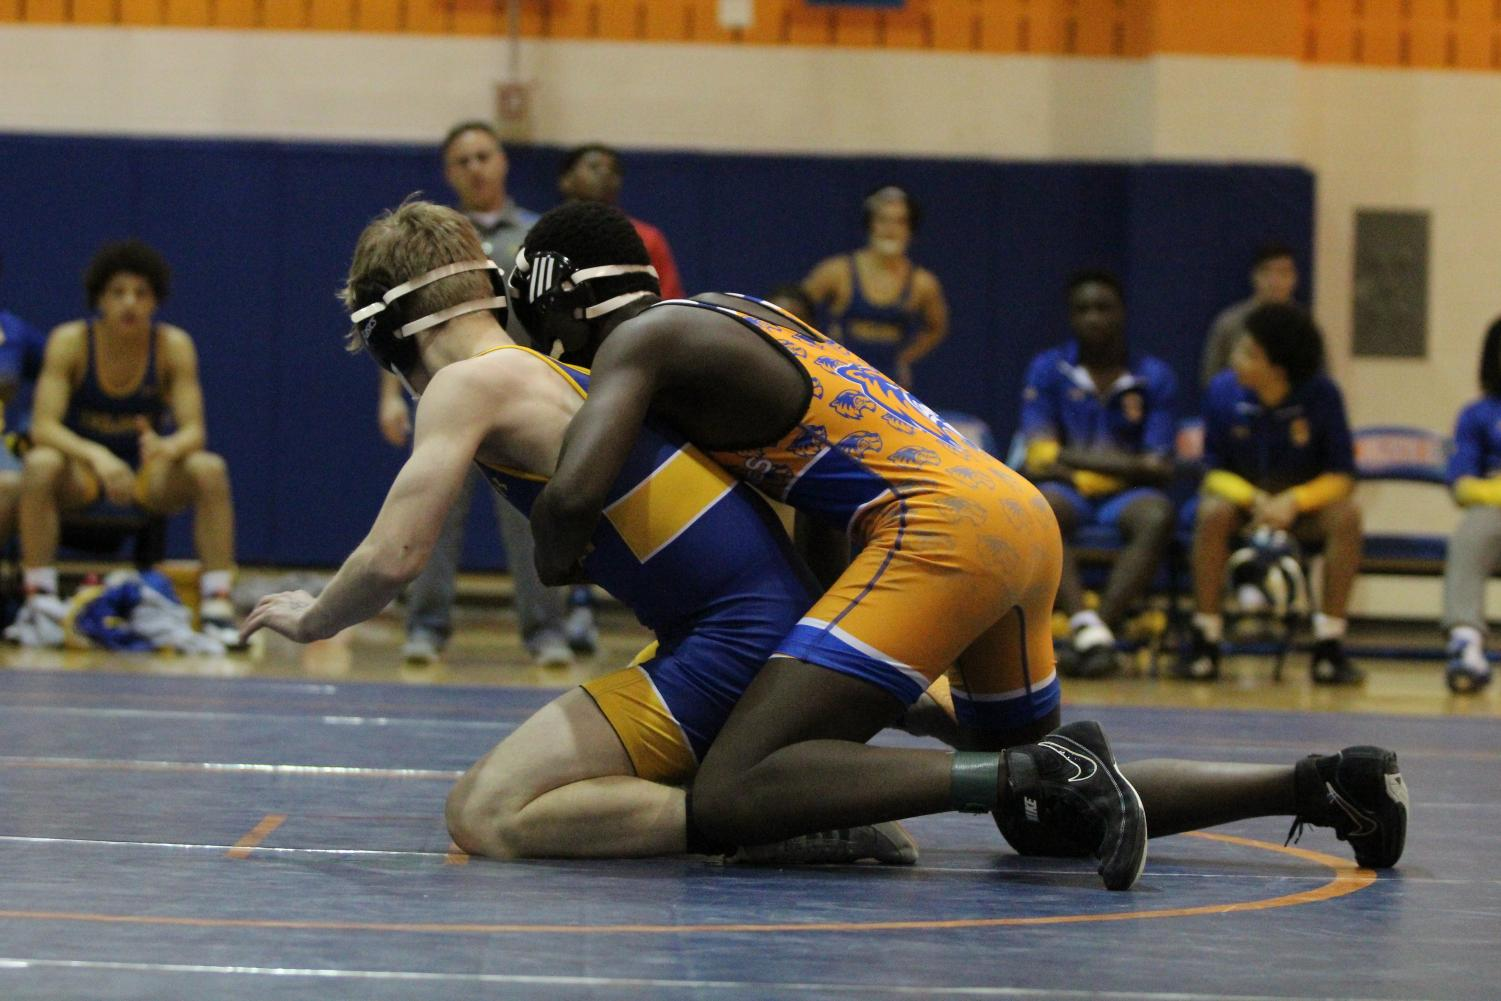 The Watkins Mill High School Wolverines defeated the Gaithersburg High School Trojans in a wrestling match on January 28.